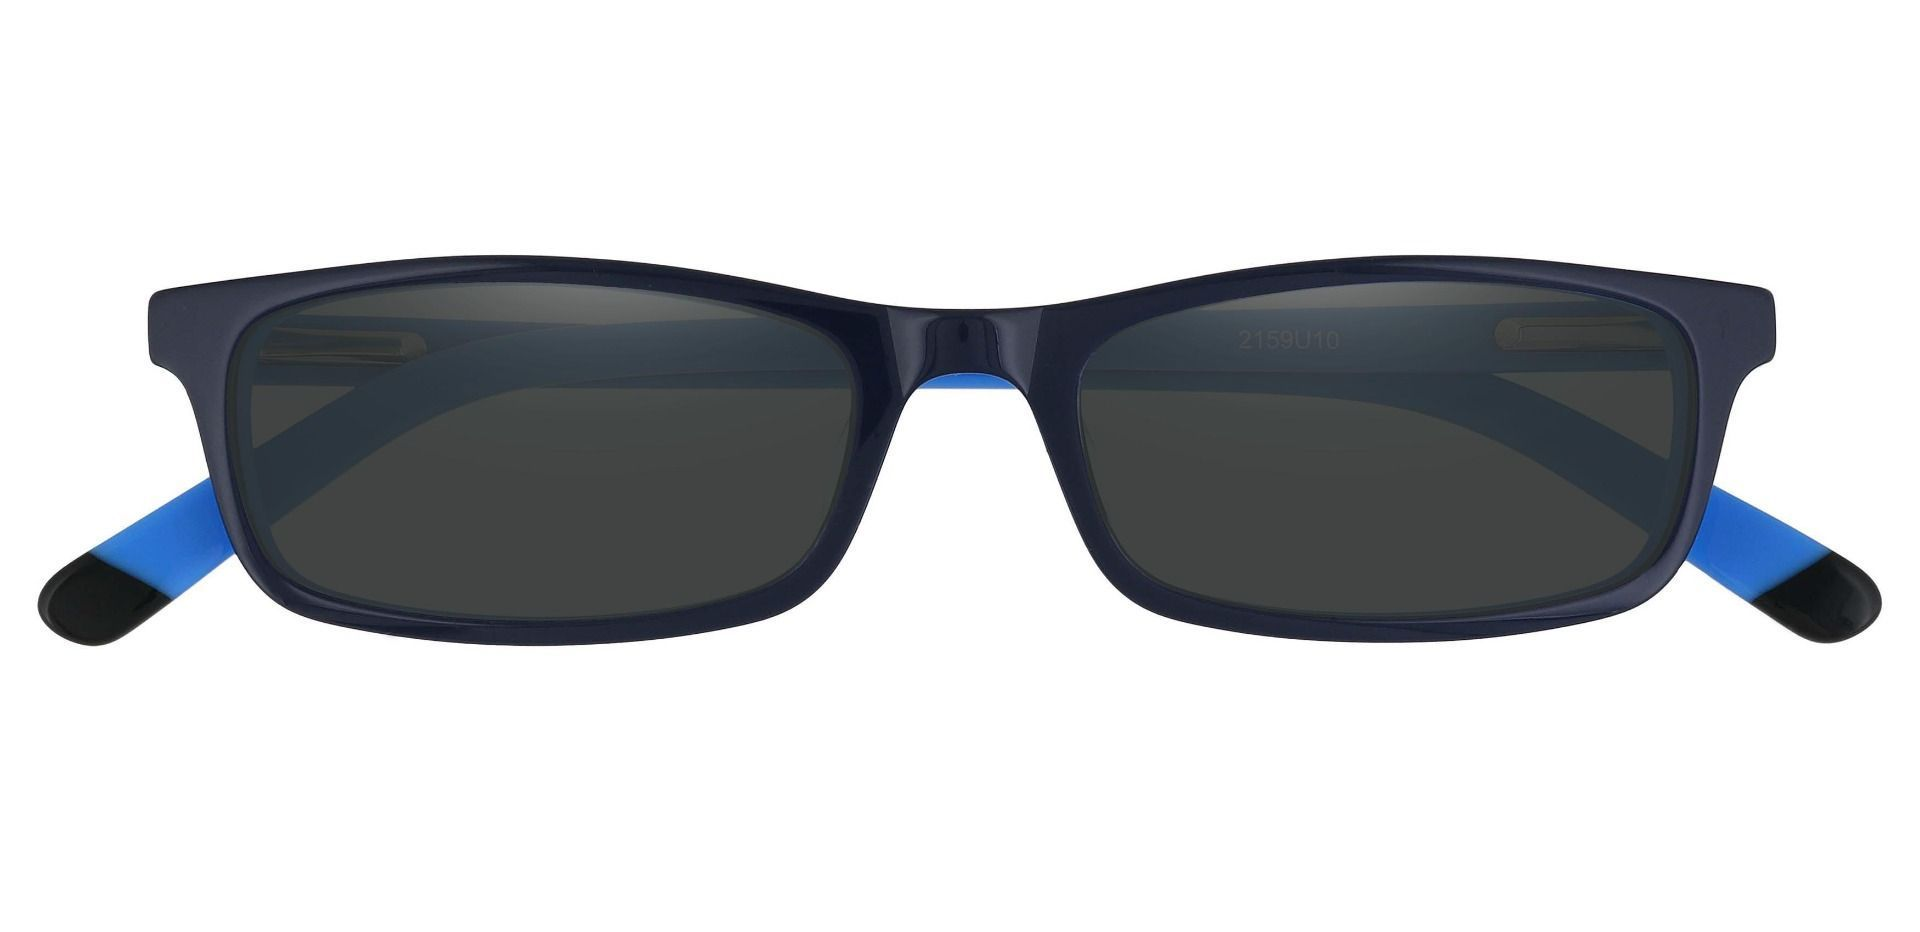 Palisades Rectangle Single Vision Sunglasses - Blue Frame With Gray Lenses